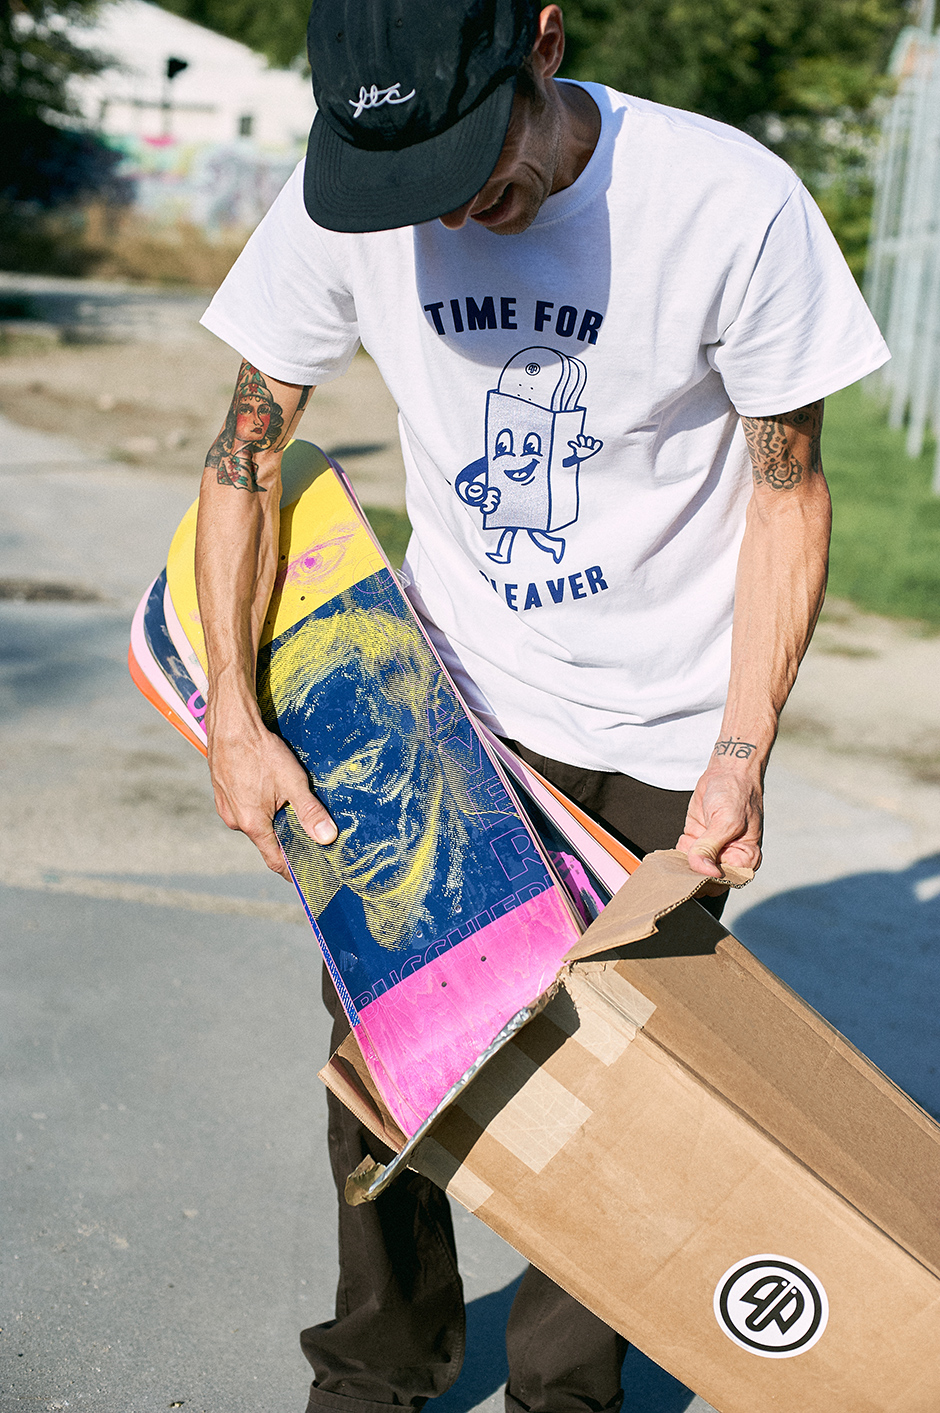 Time for shipping. Photo: Adrian Rios